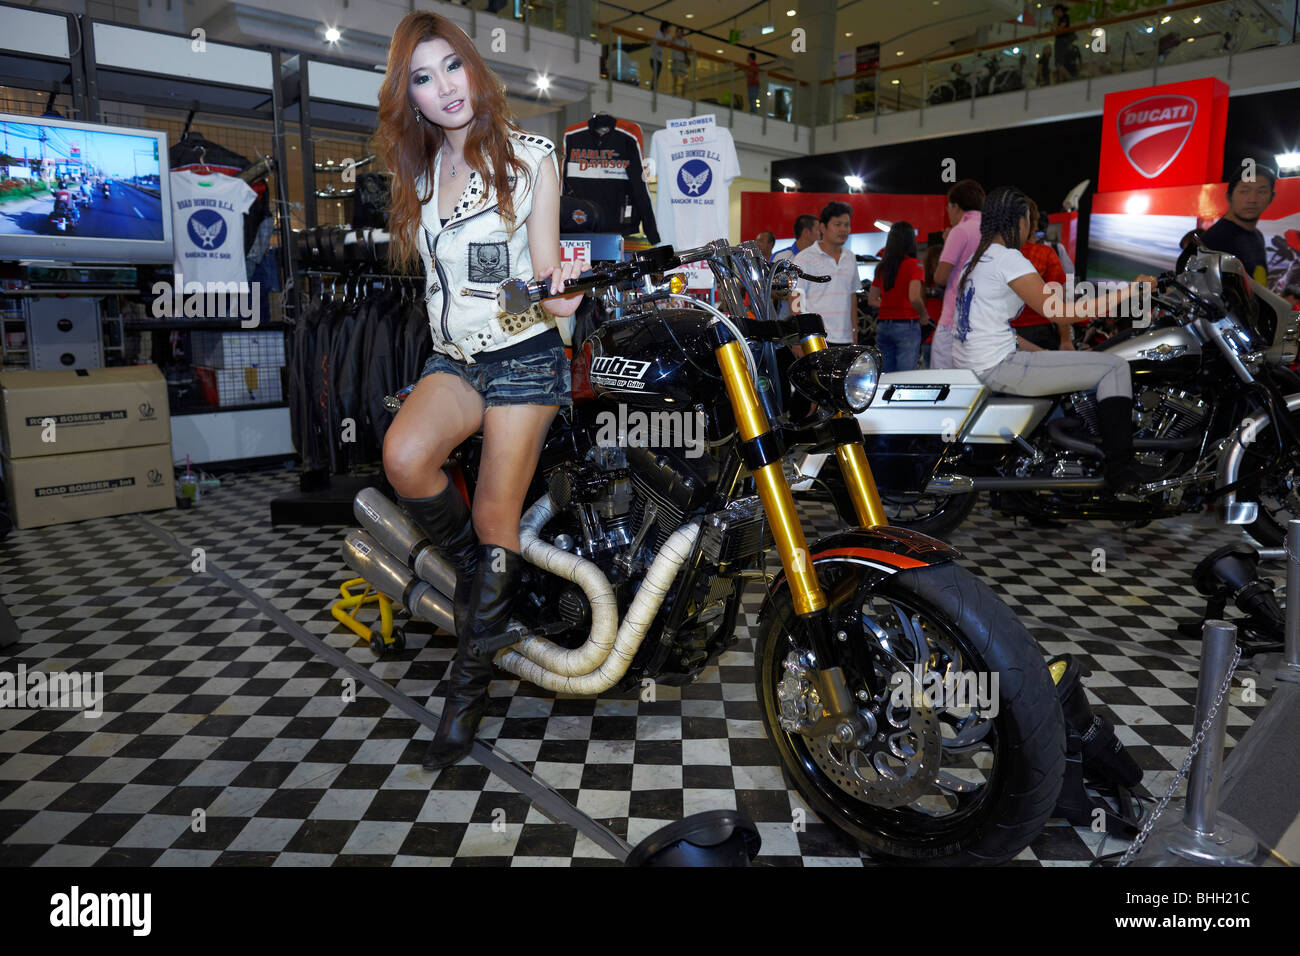 Harley Davidson customized chopper and female model at the annual Bangkok motorcycle show. Thailand S. E. Asia - Stock Image